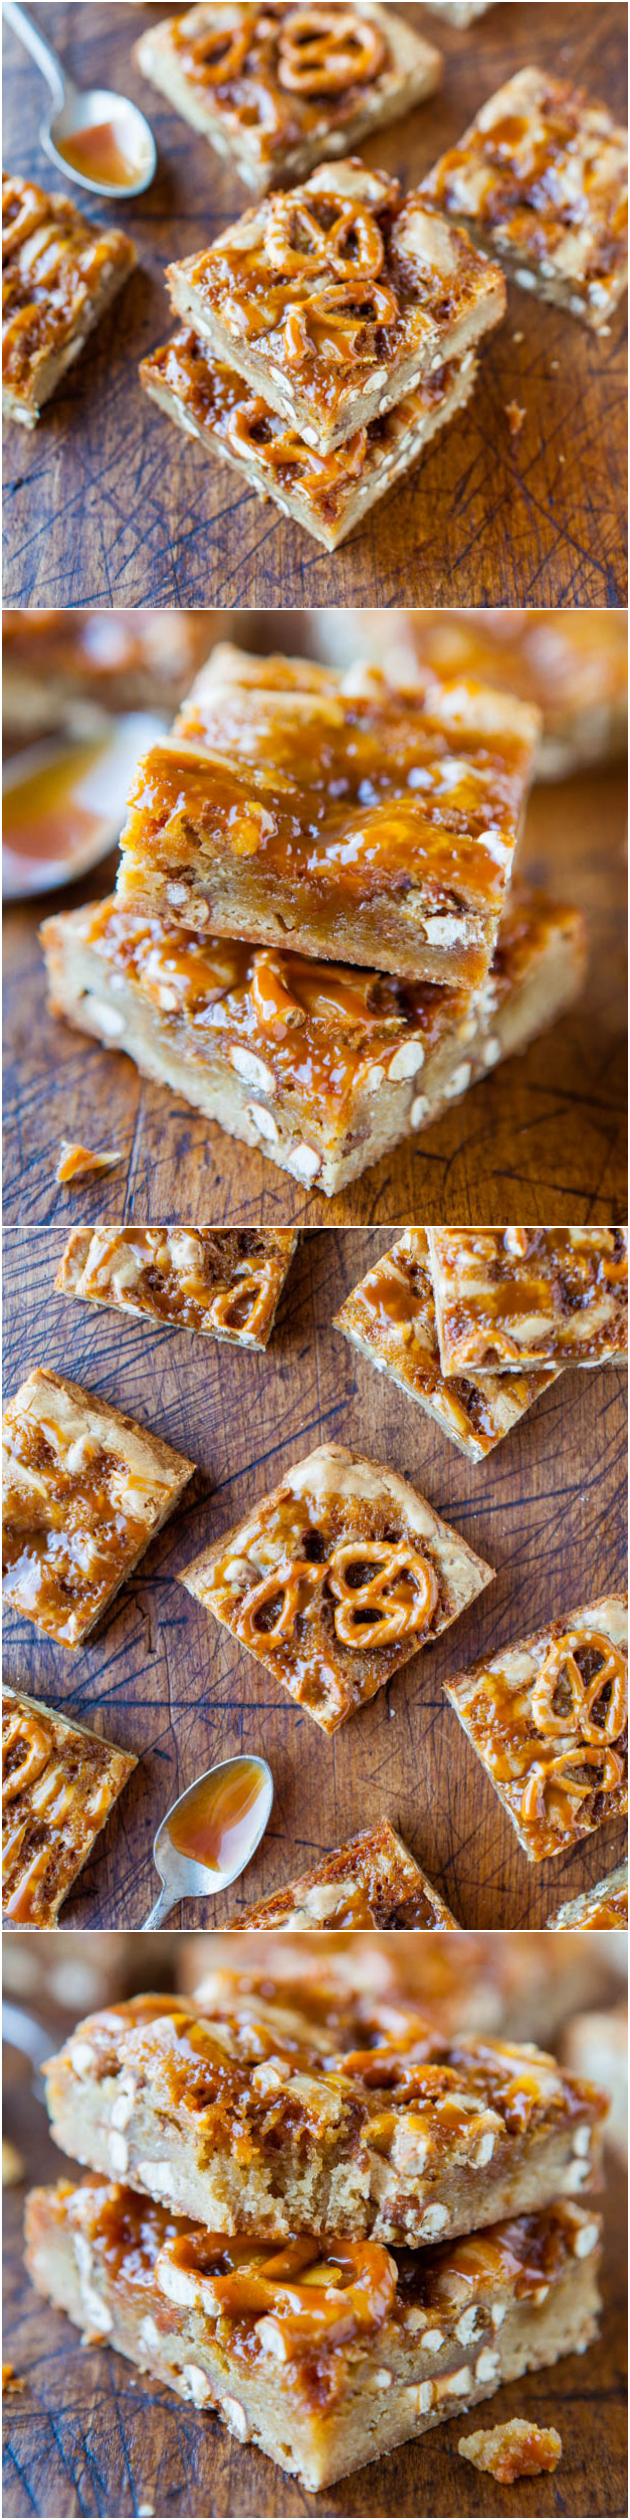 Salted Caramel Pretzel Blondies - Soft, crunchy, chewy, salty-and-sweet. Something for everyone in these easy blondies! Recipe at averiecooks.com